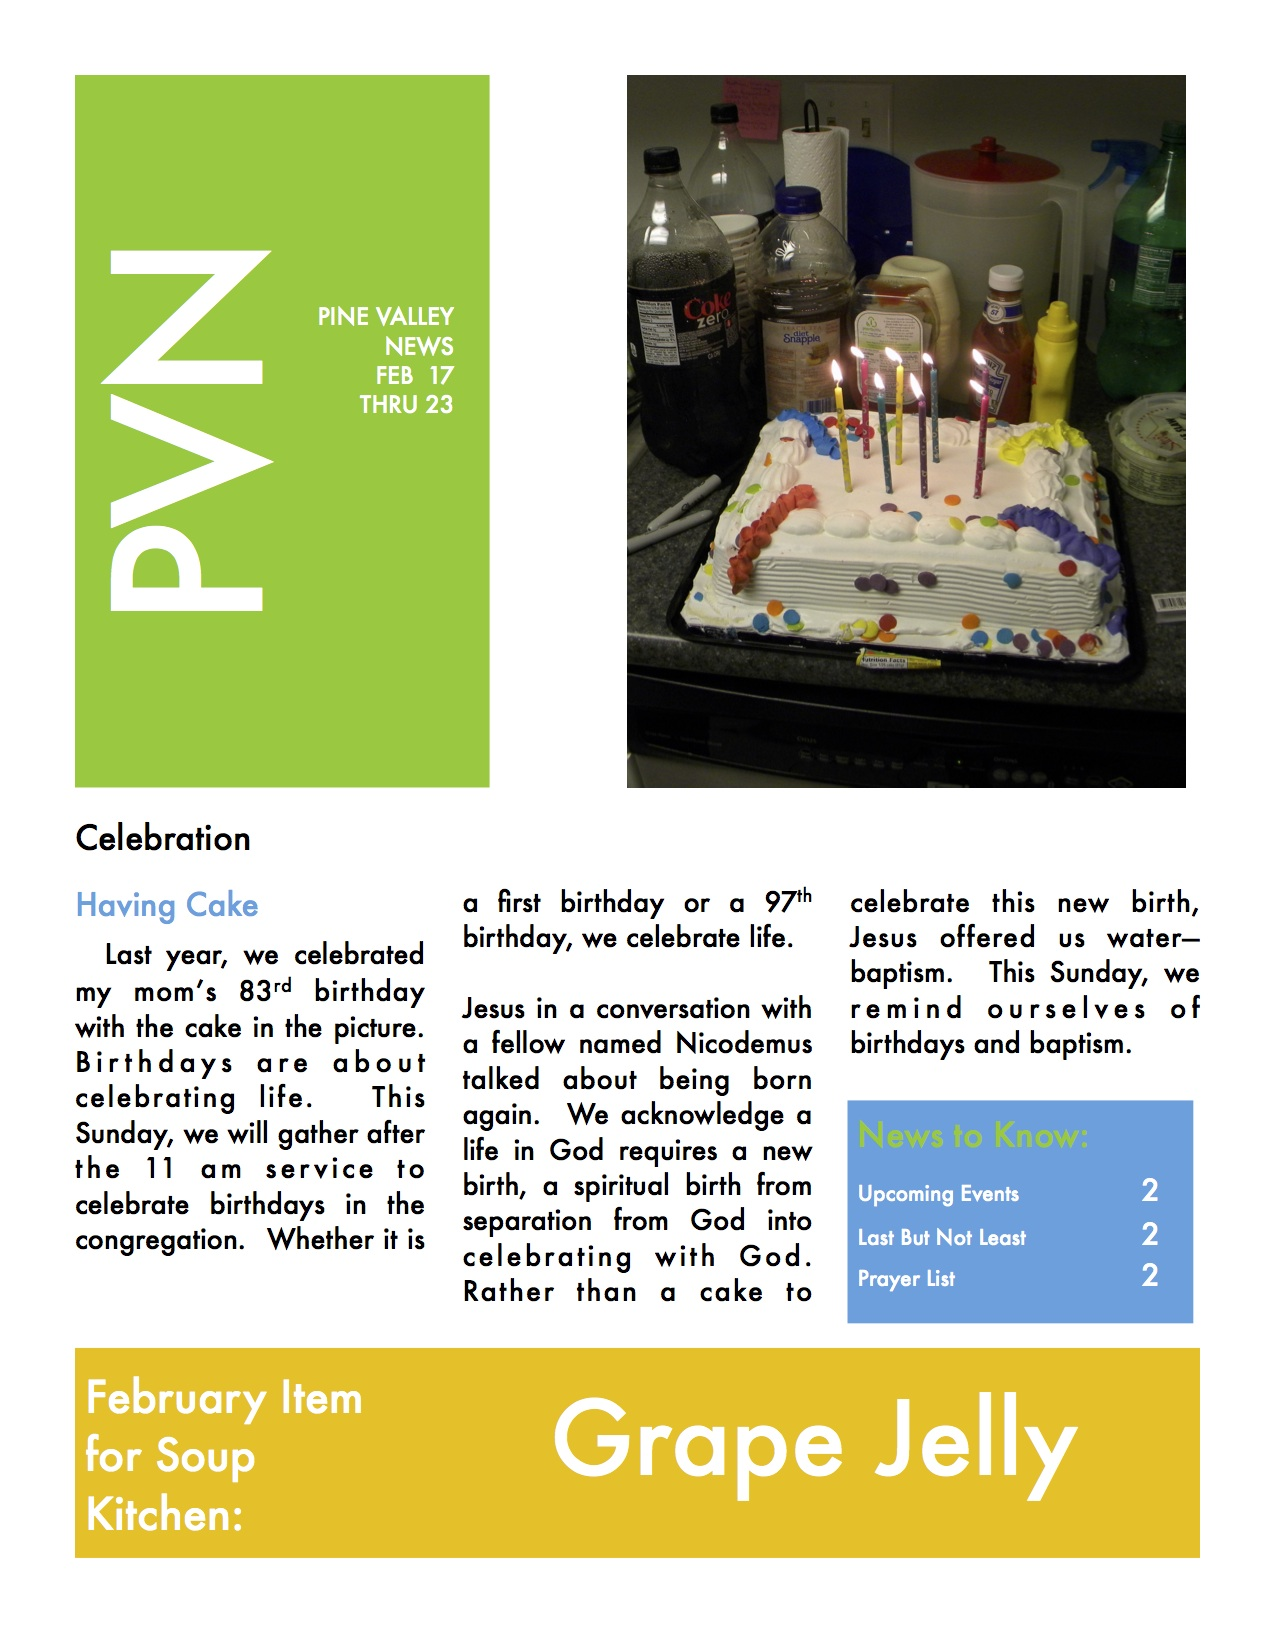 Pine Valley News for Week of February 17 through 23, 2014 ...